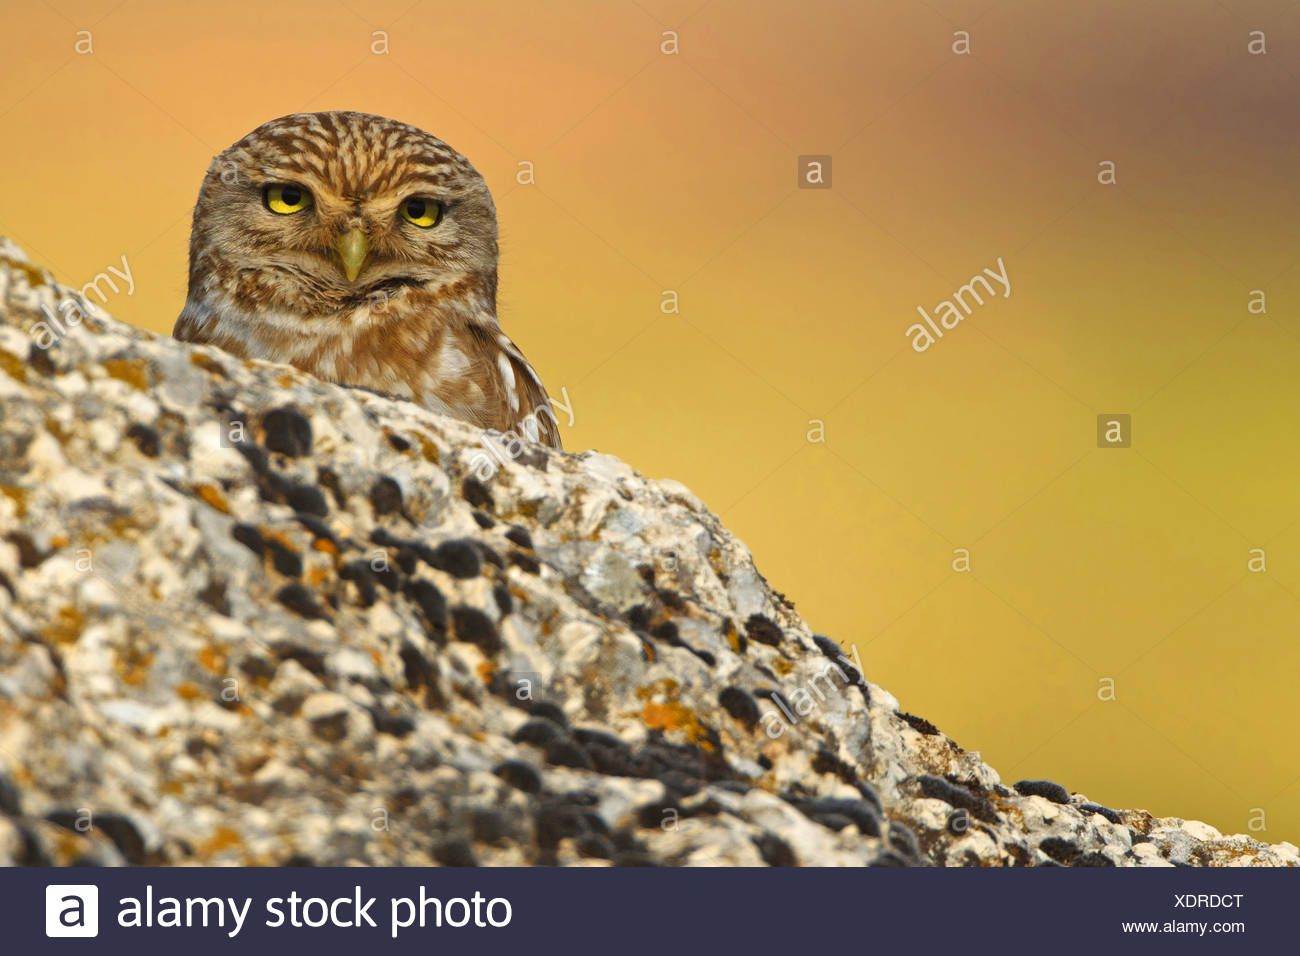 little owl (Athene noctua), peering from behind a rock, Turkey, Sanliurfa - Stock Image